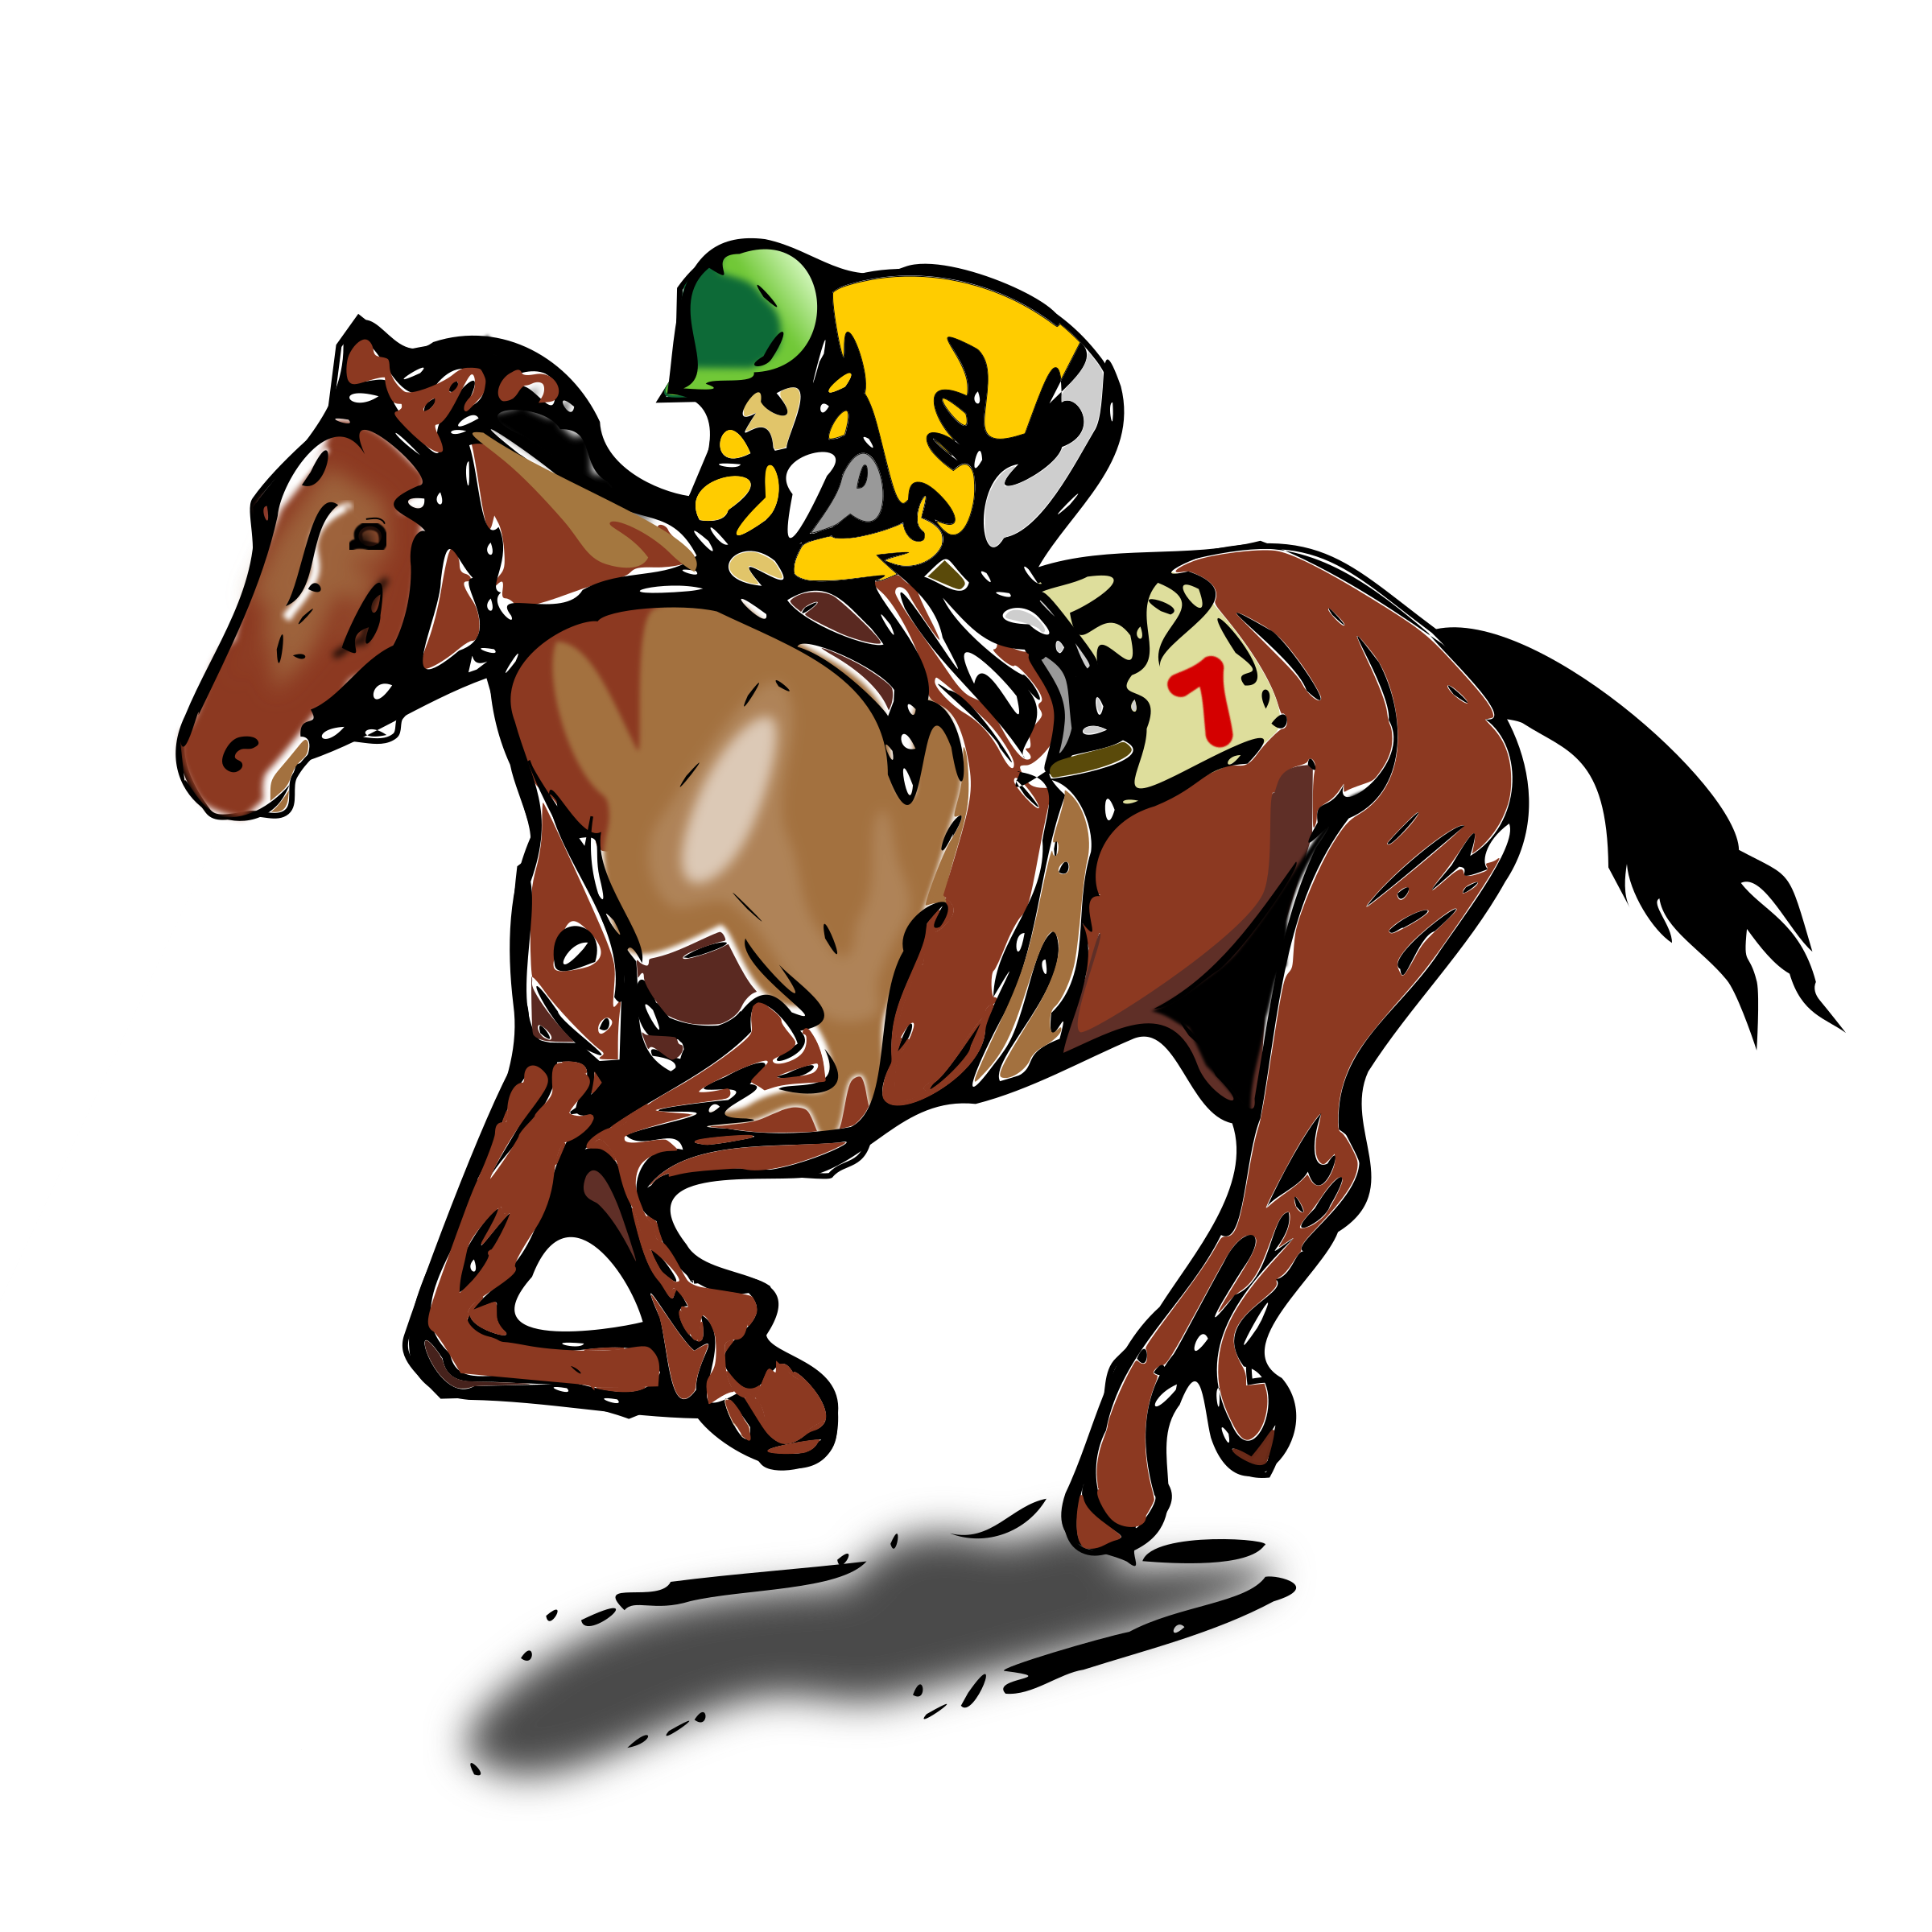 Race clipart demolition derby. Horse racing night free